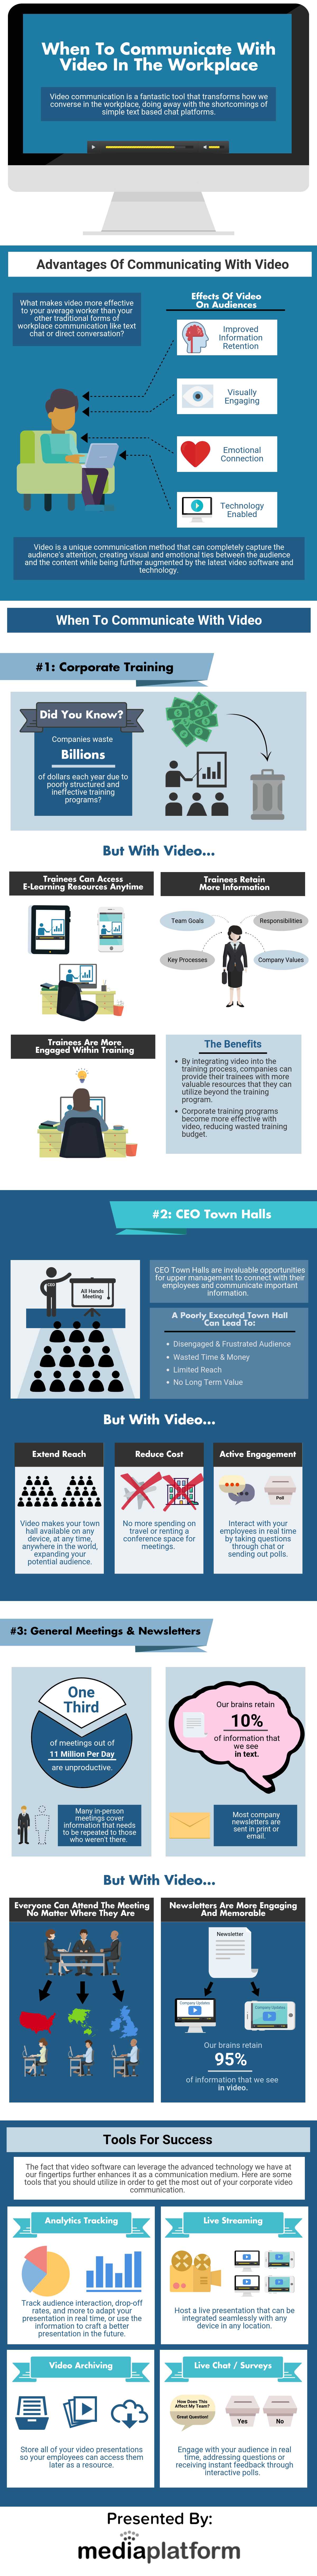 When to communicate with Video in the Workplace